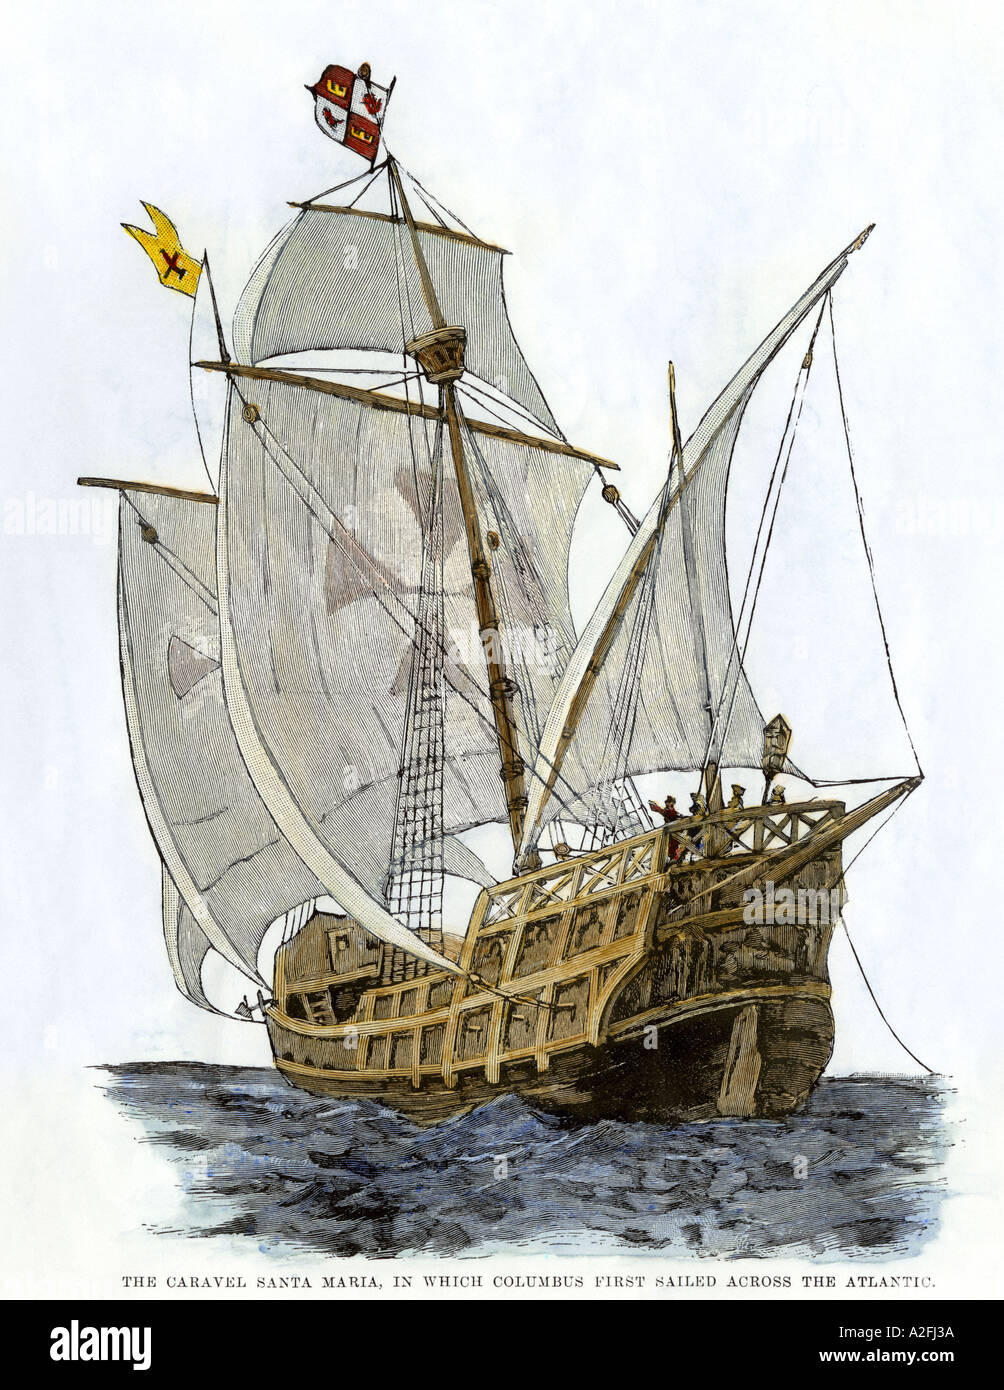 Caravel Santa Maria the flagship of Columbus first voyage which sank off Hispaniola in 1492. Hand-colored woodcut - Stock Image